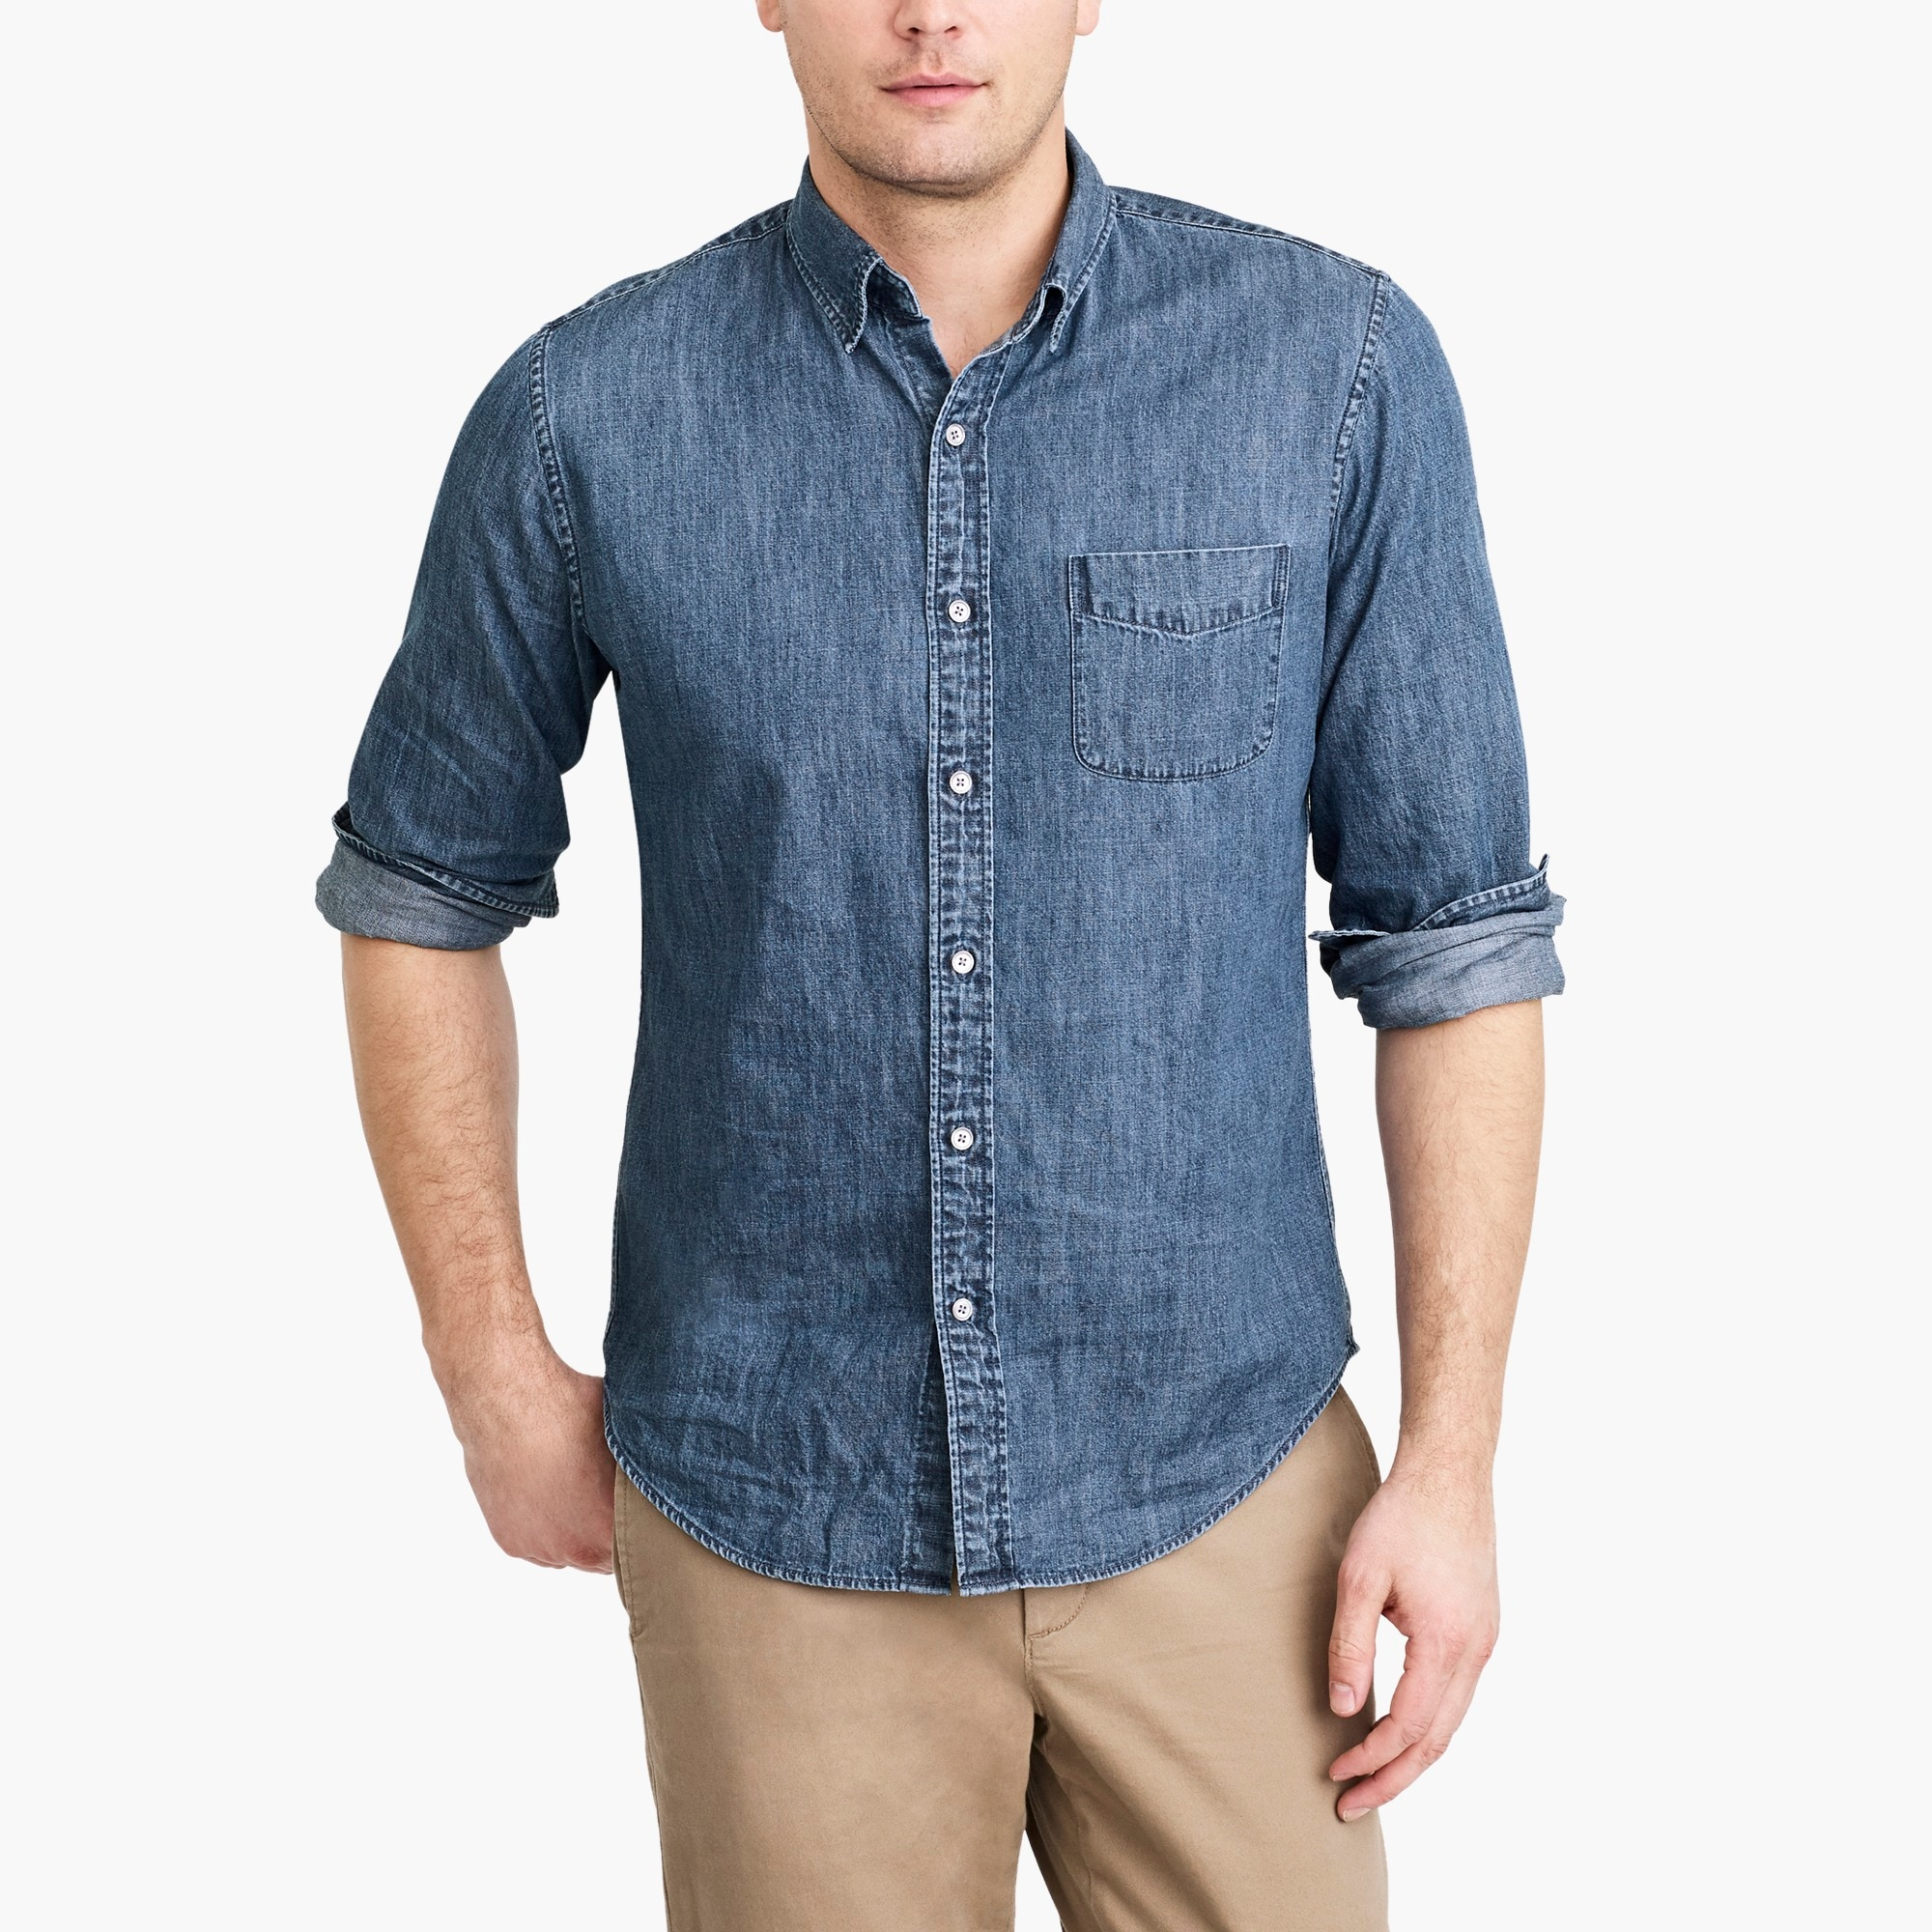 factory mens Denim shirt in medium wash